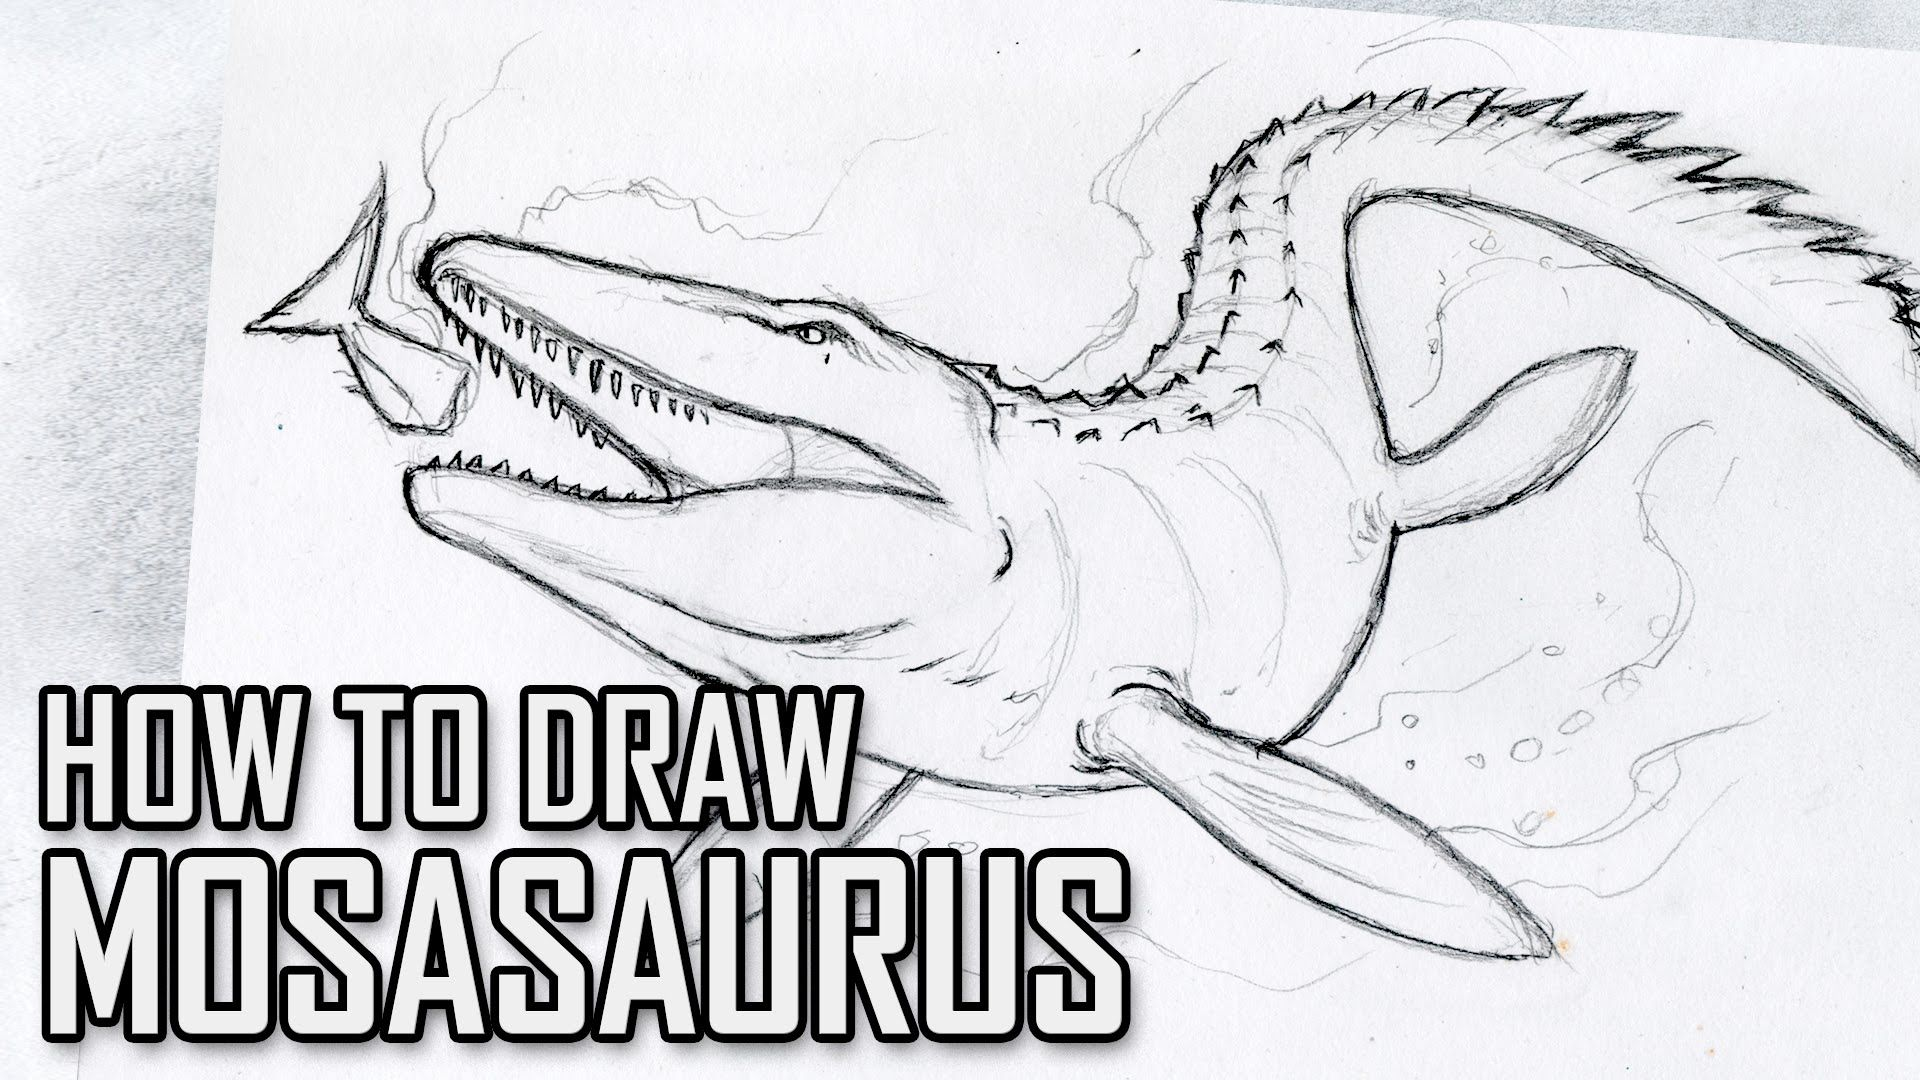 How to draw indominus rex scales jurassic world youtube - How To Draw Mosasaurus Tutorial From Jurassic World Just Like With The Indominus Rex Ya Ll Asked For Mosasaurus And I Delivered